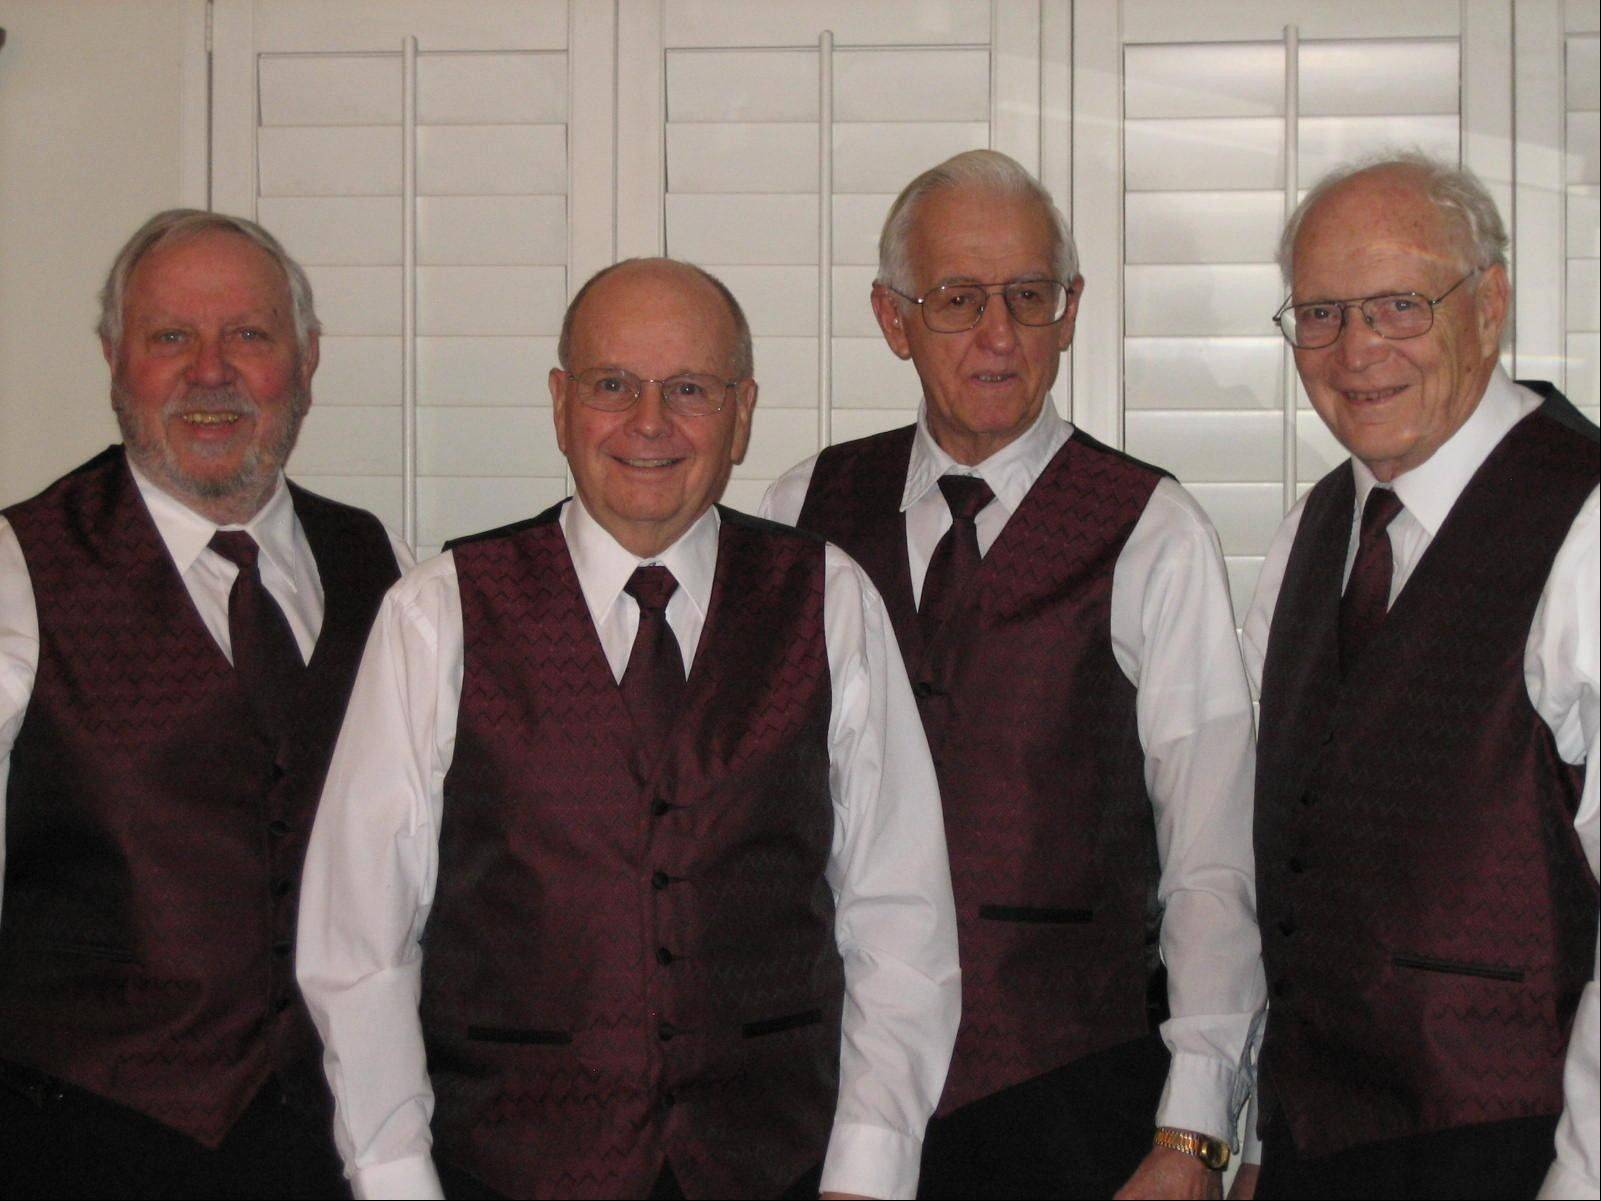 The Clefhanges, a barbershop quartet, will be one of the highlights of McHenry County Historical Society�s annual Heritage Fair Sunday, July 10.